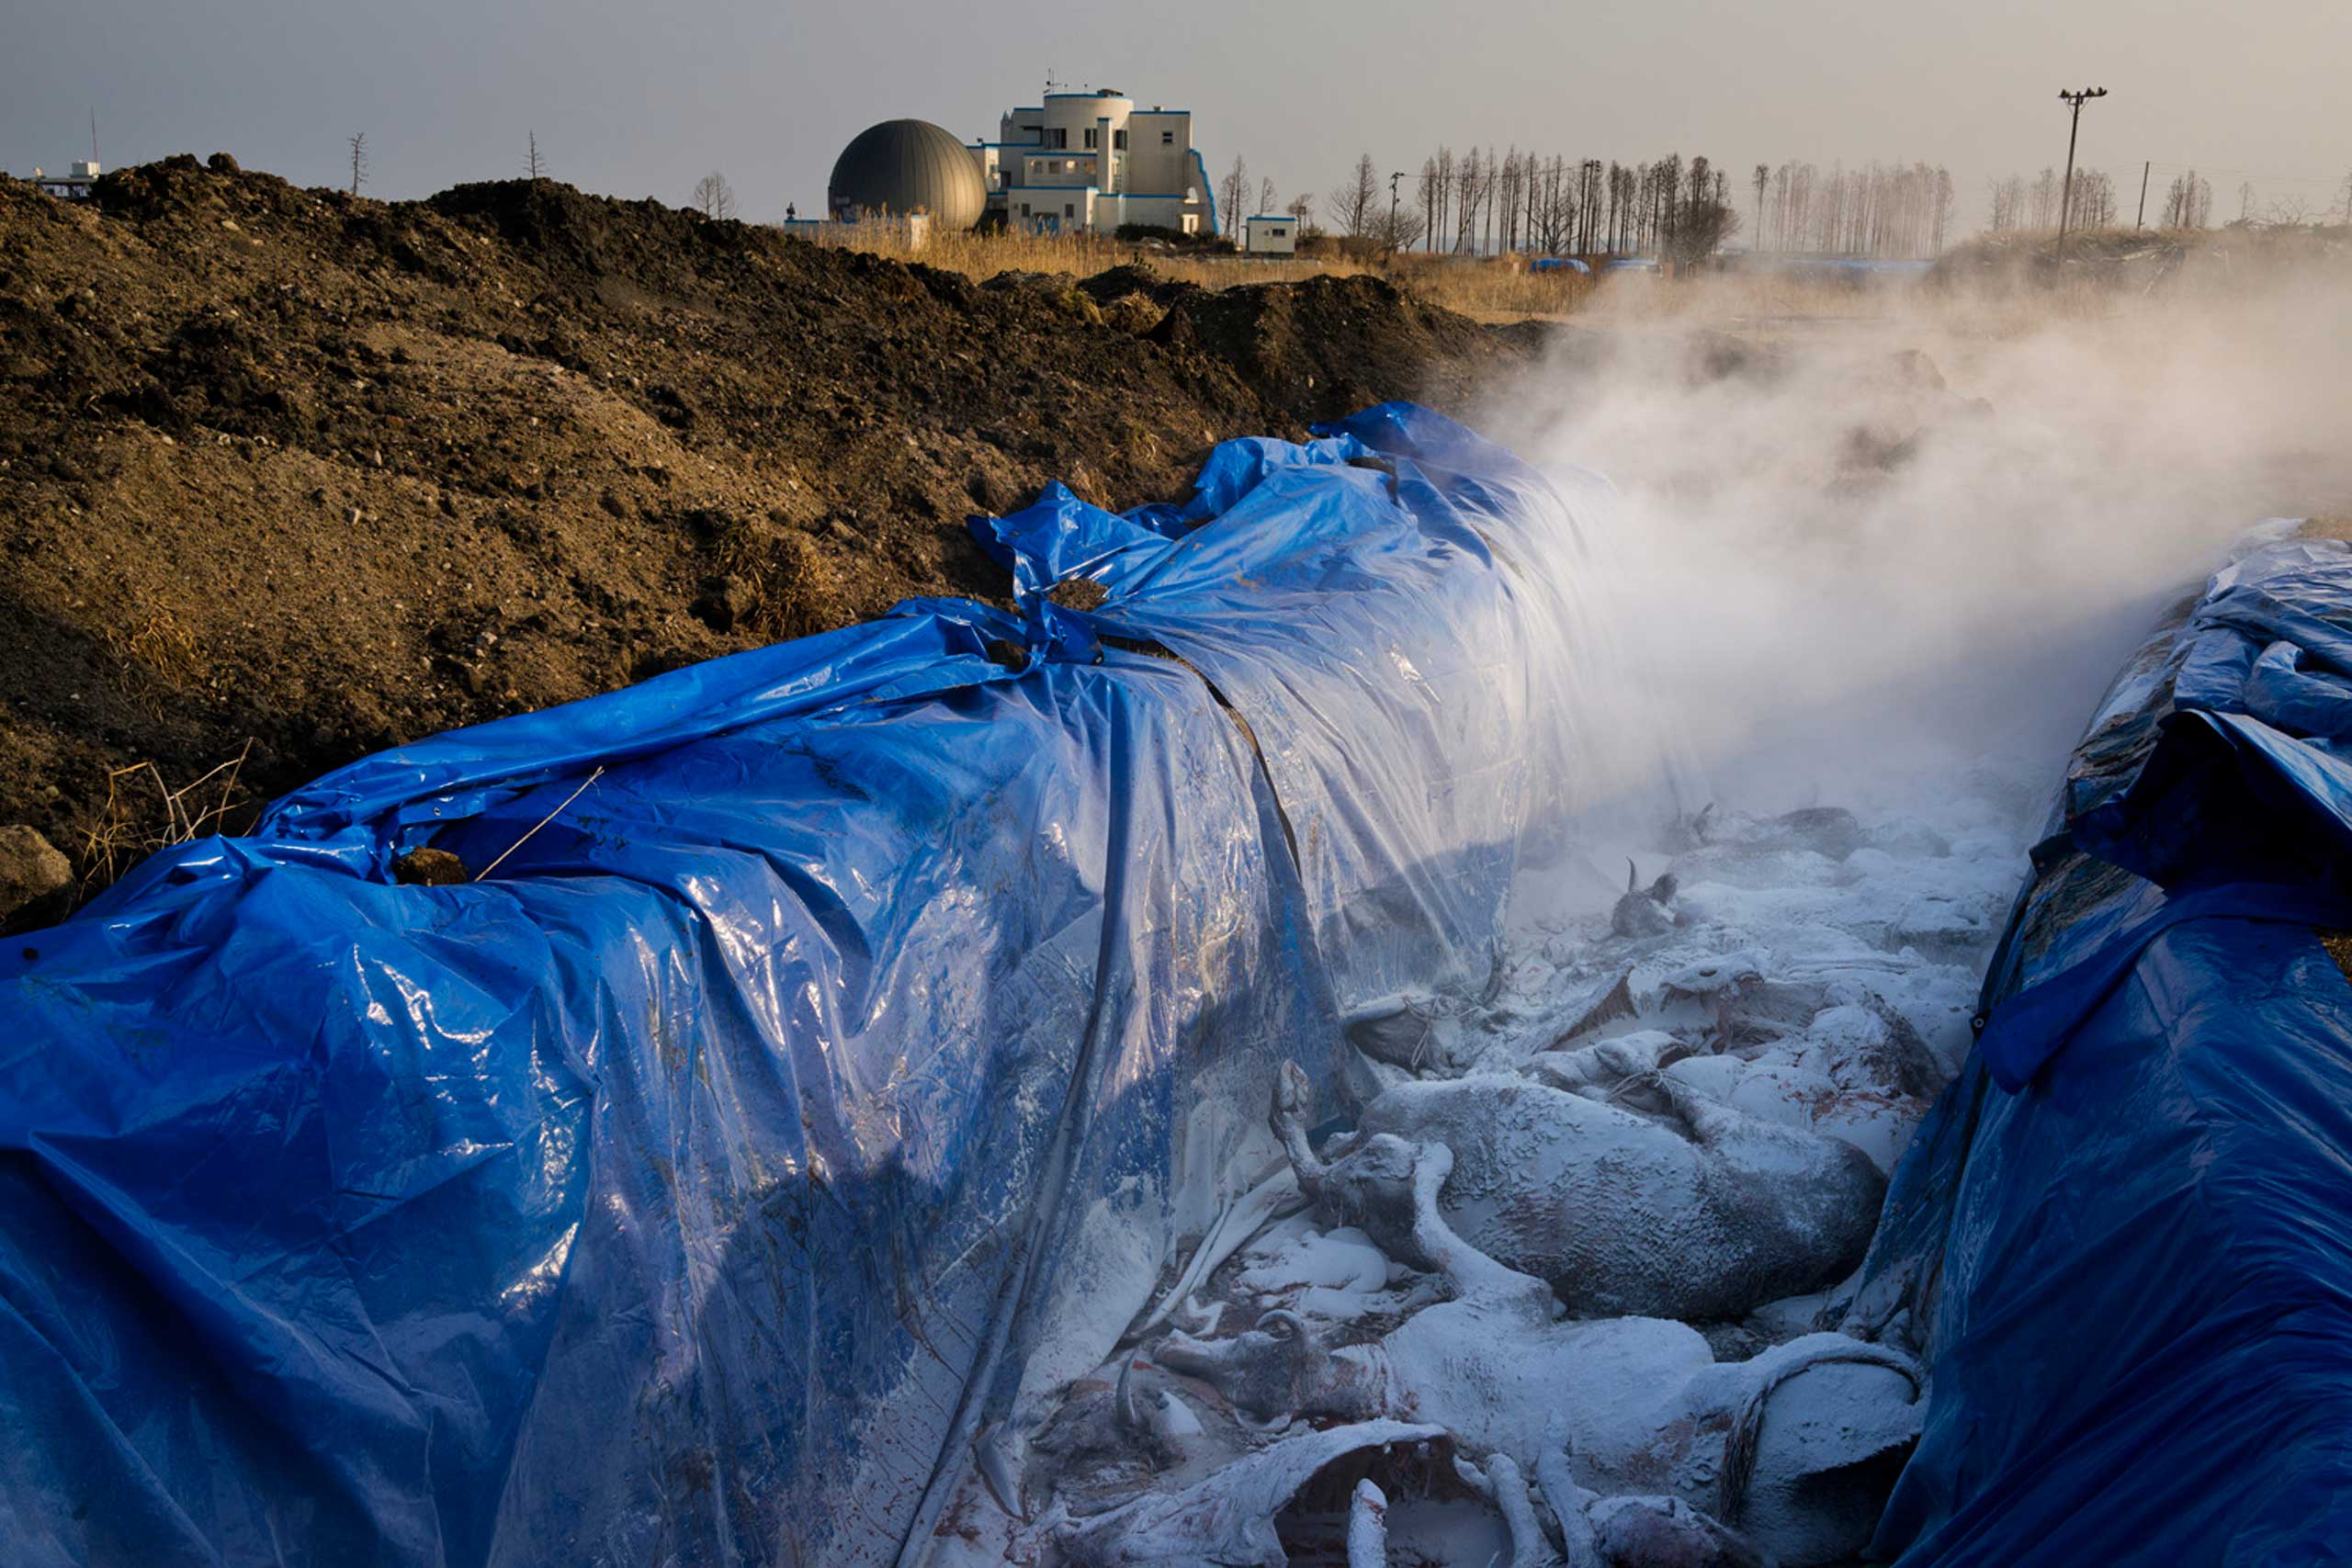 Japan, Namie, 2014. A dozen cow remains are piled in a large pit among thousands of other cow carcasses buried inside the exclusion zone a few kilometers from the Fukushima Daiichi Nuclear Power Station.From  See Inside Fukushima's Lethal Reactor